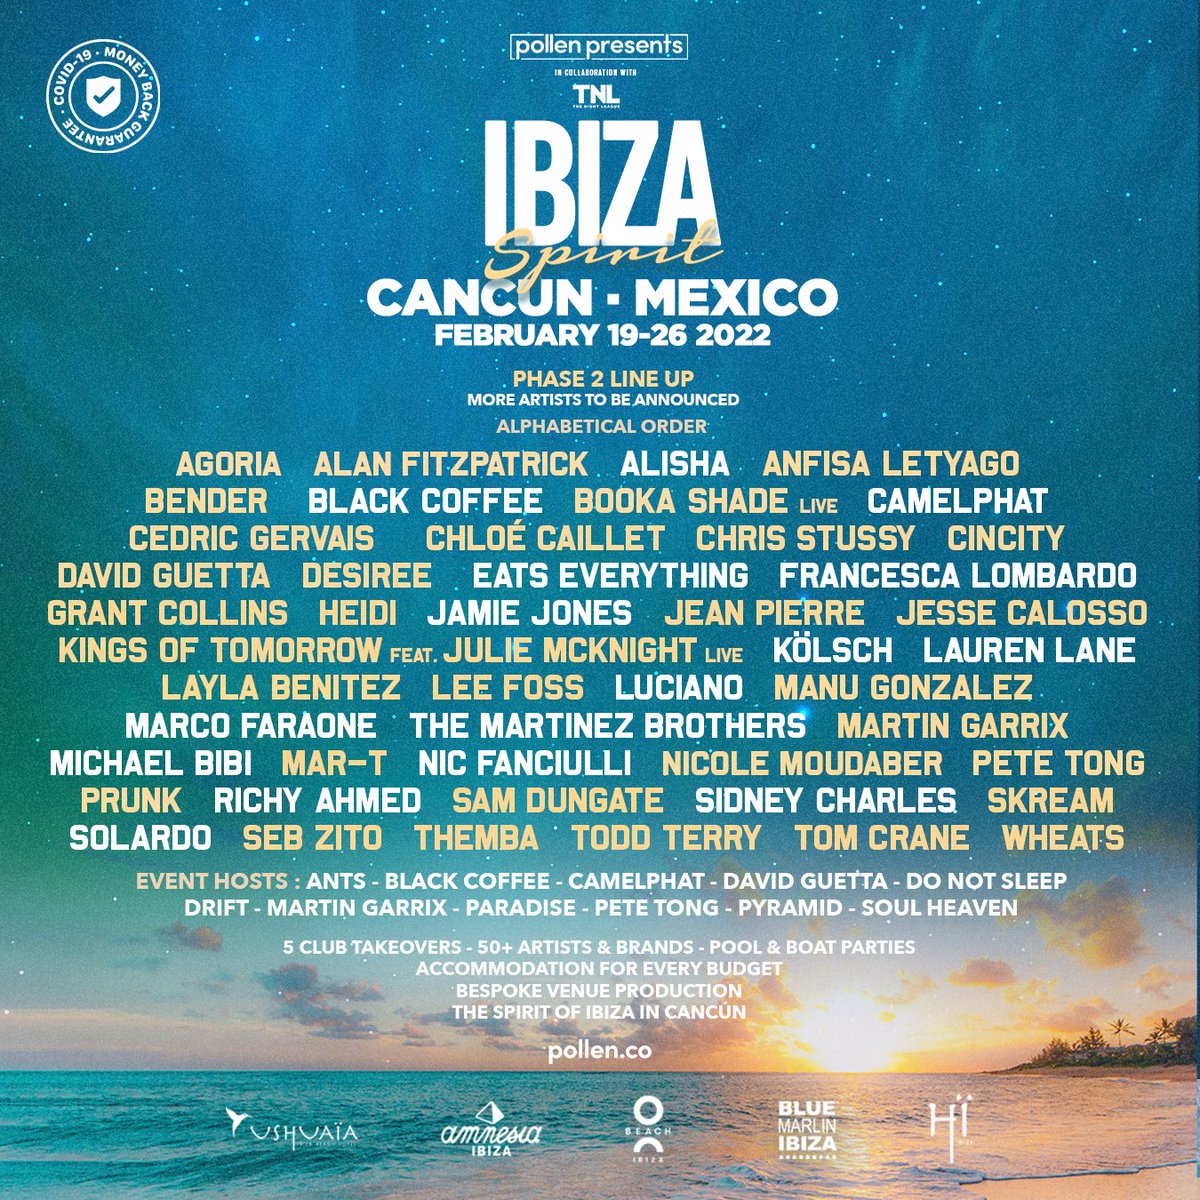 MEXICO we're coming in Feb 22… check out this line up! Register here for info / access plln.io/ibizaspirit-ca…